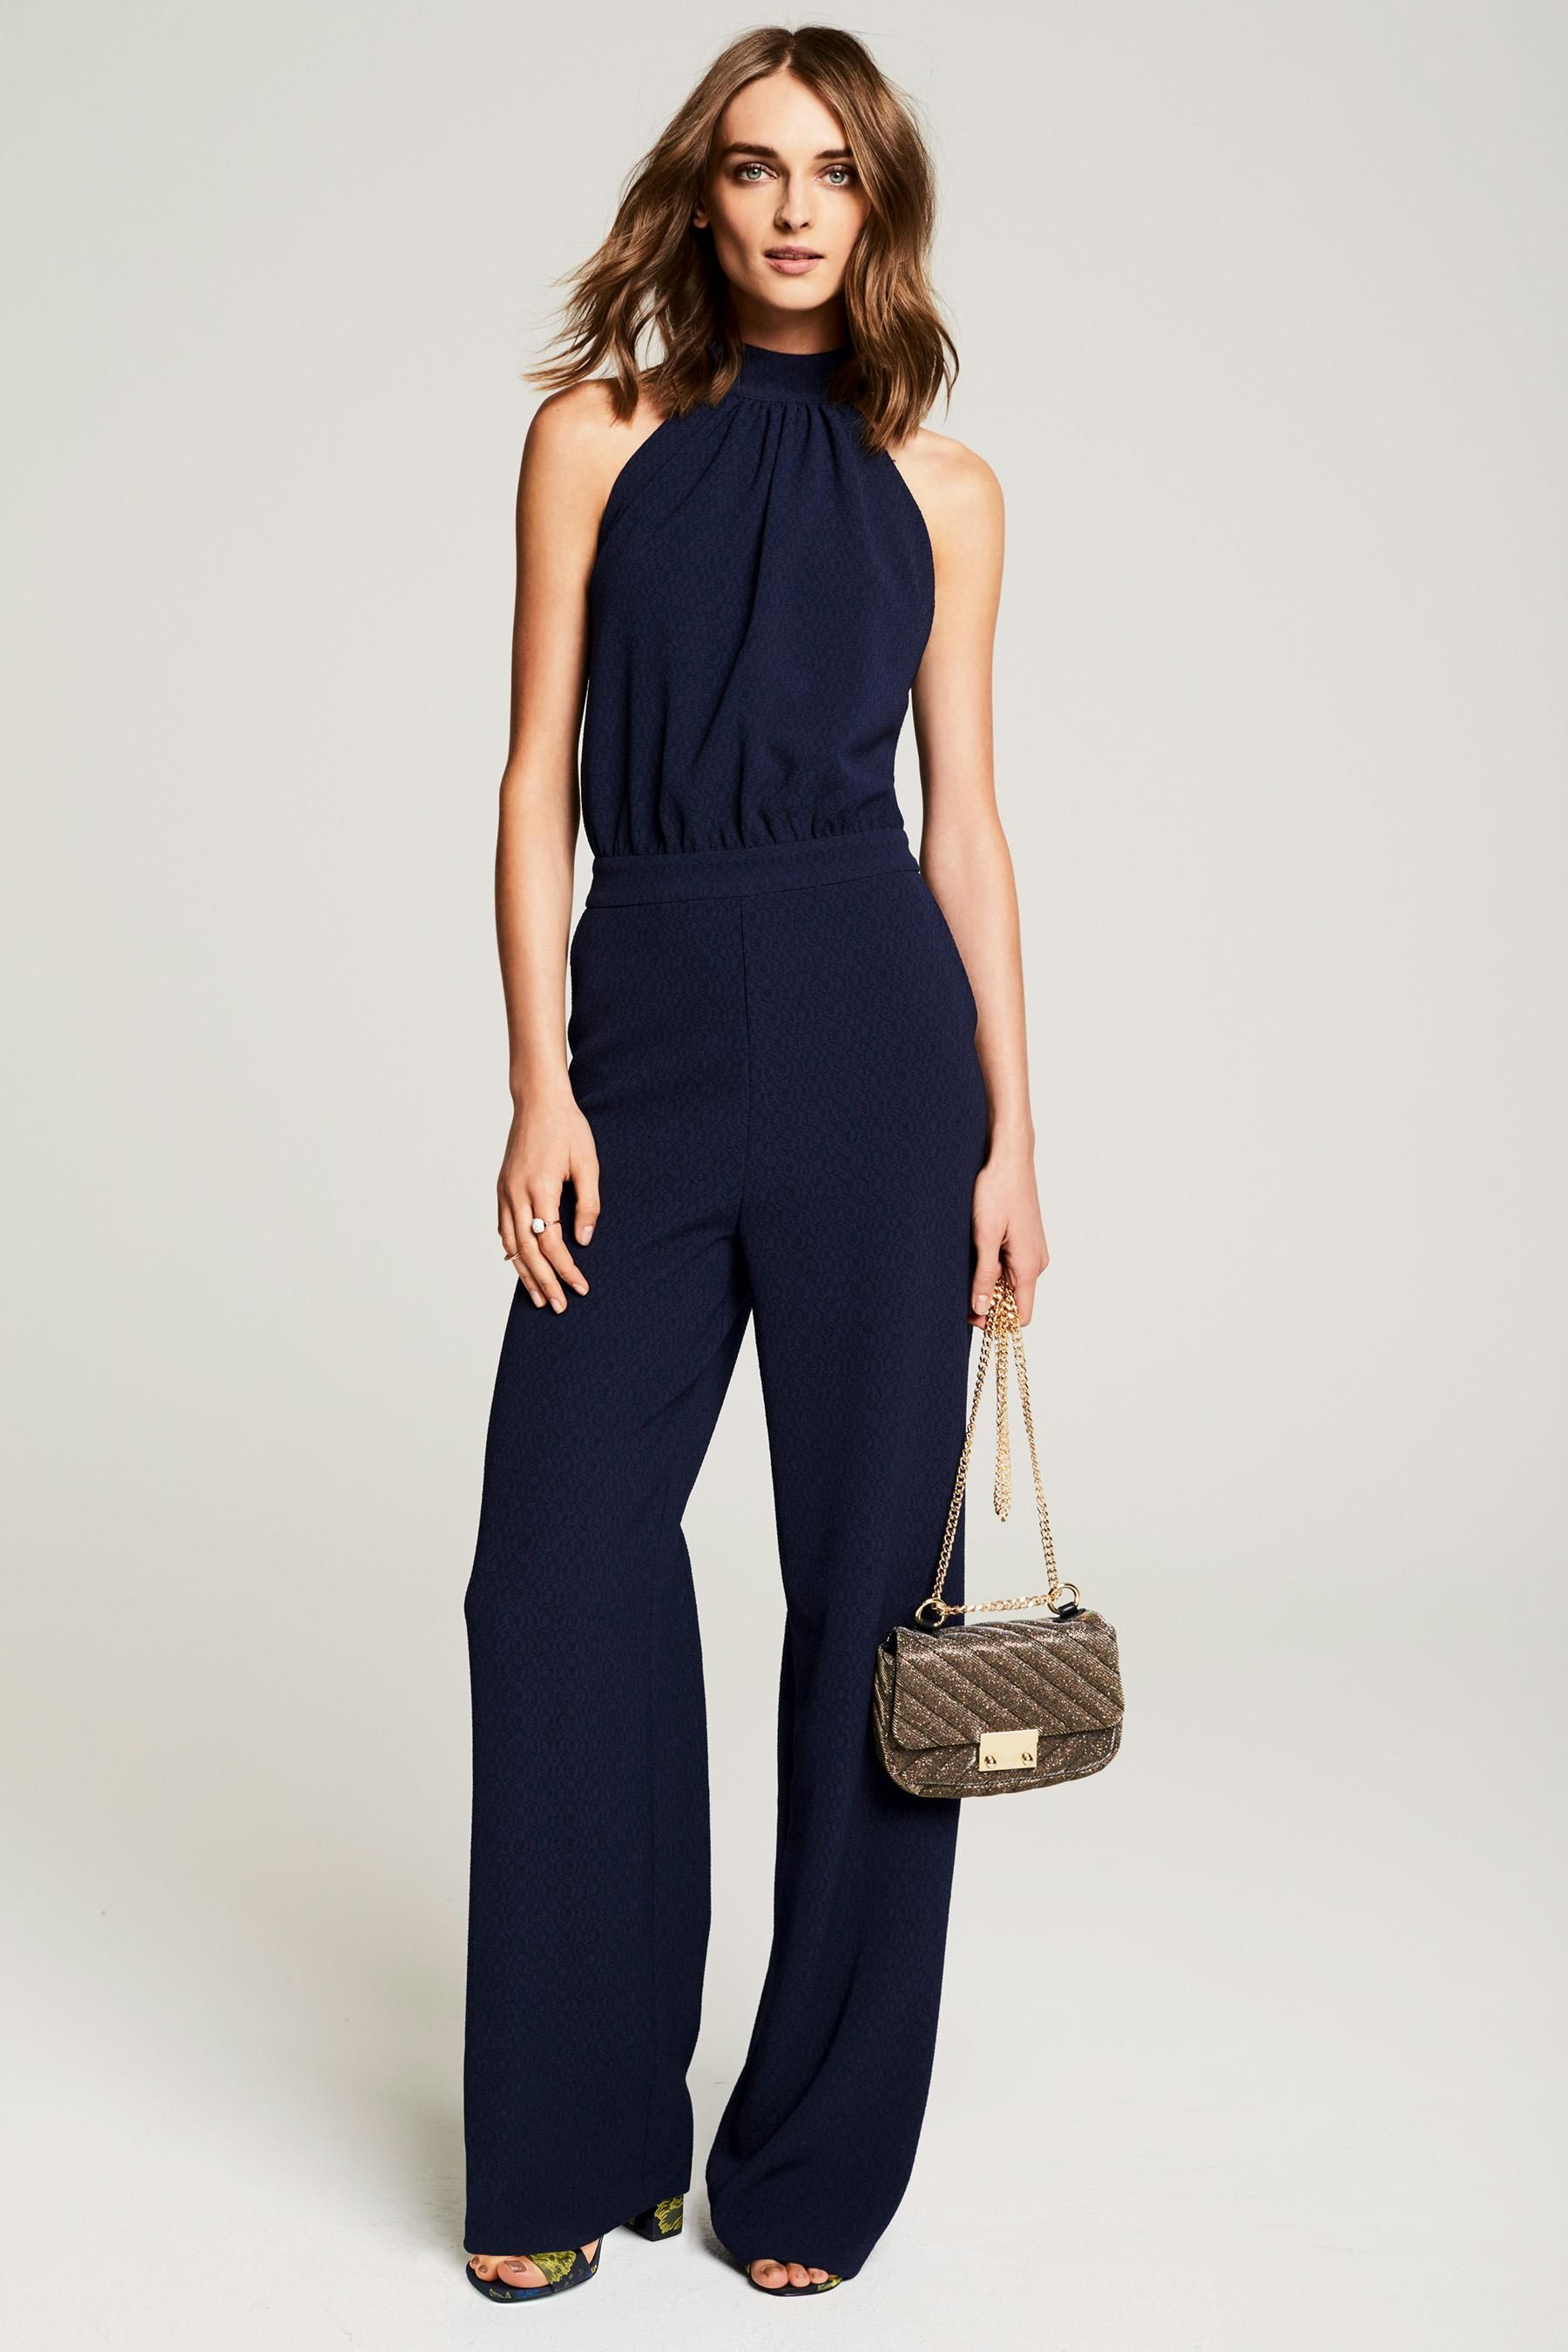 6efdc4122020c Buy Navy Strap Back Jumpsuit from the Next UK online shop | Office ...